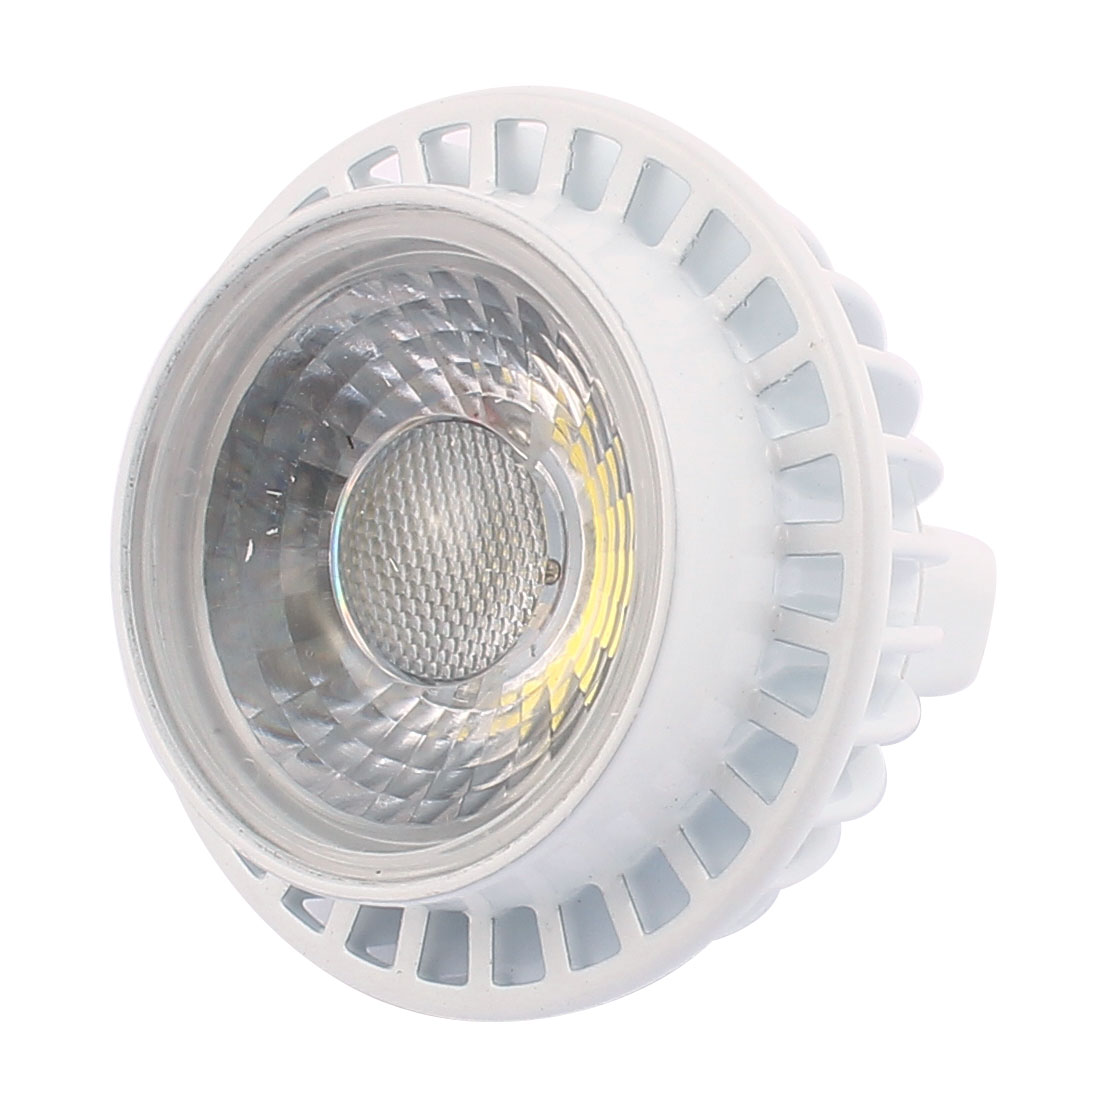 DC12V 3W Bright MR16 COB LED Spot Down Light Lamp Energy Saving Pure White